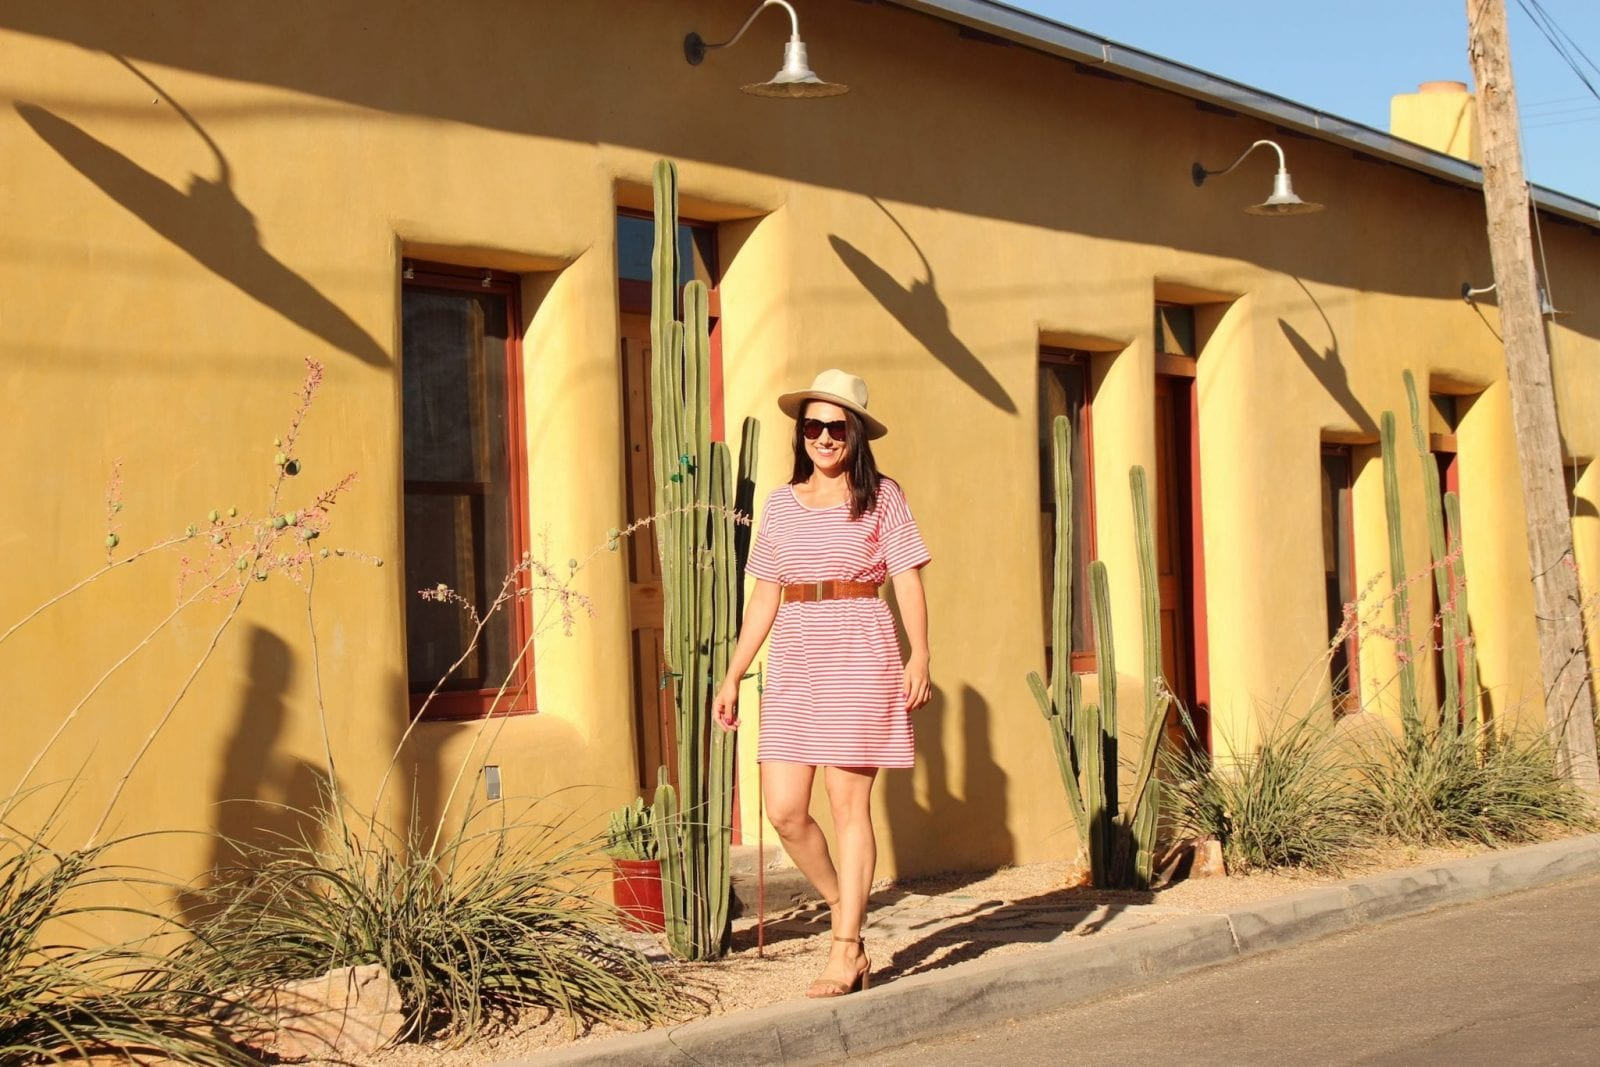 This is a scenic shot with a yellow house background, while I'm wearing a red striped Everlane dress.